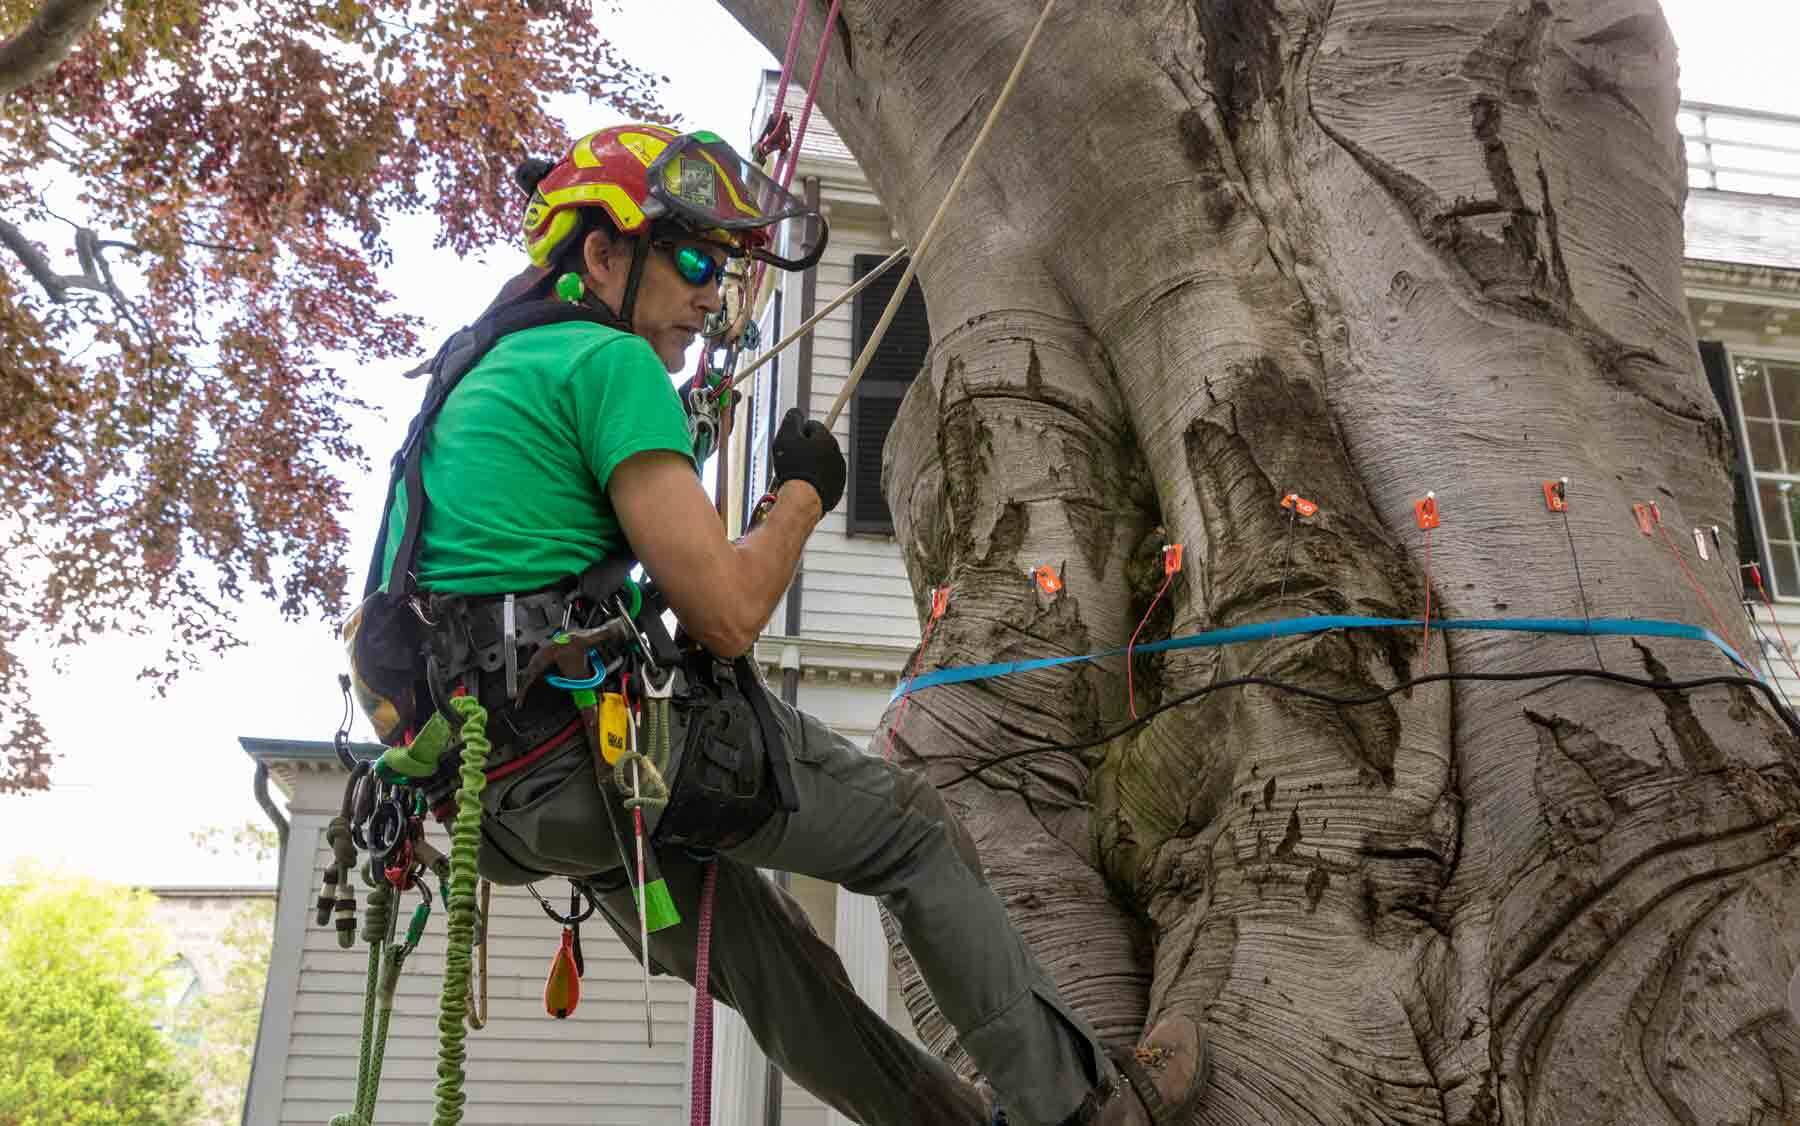 A man hanging from ropes is working on a beech tree